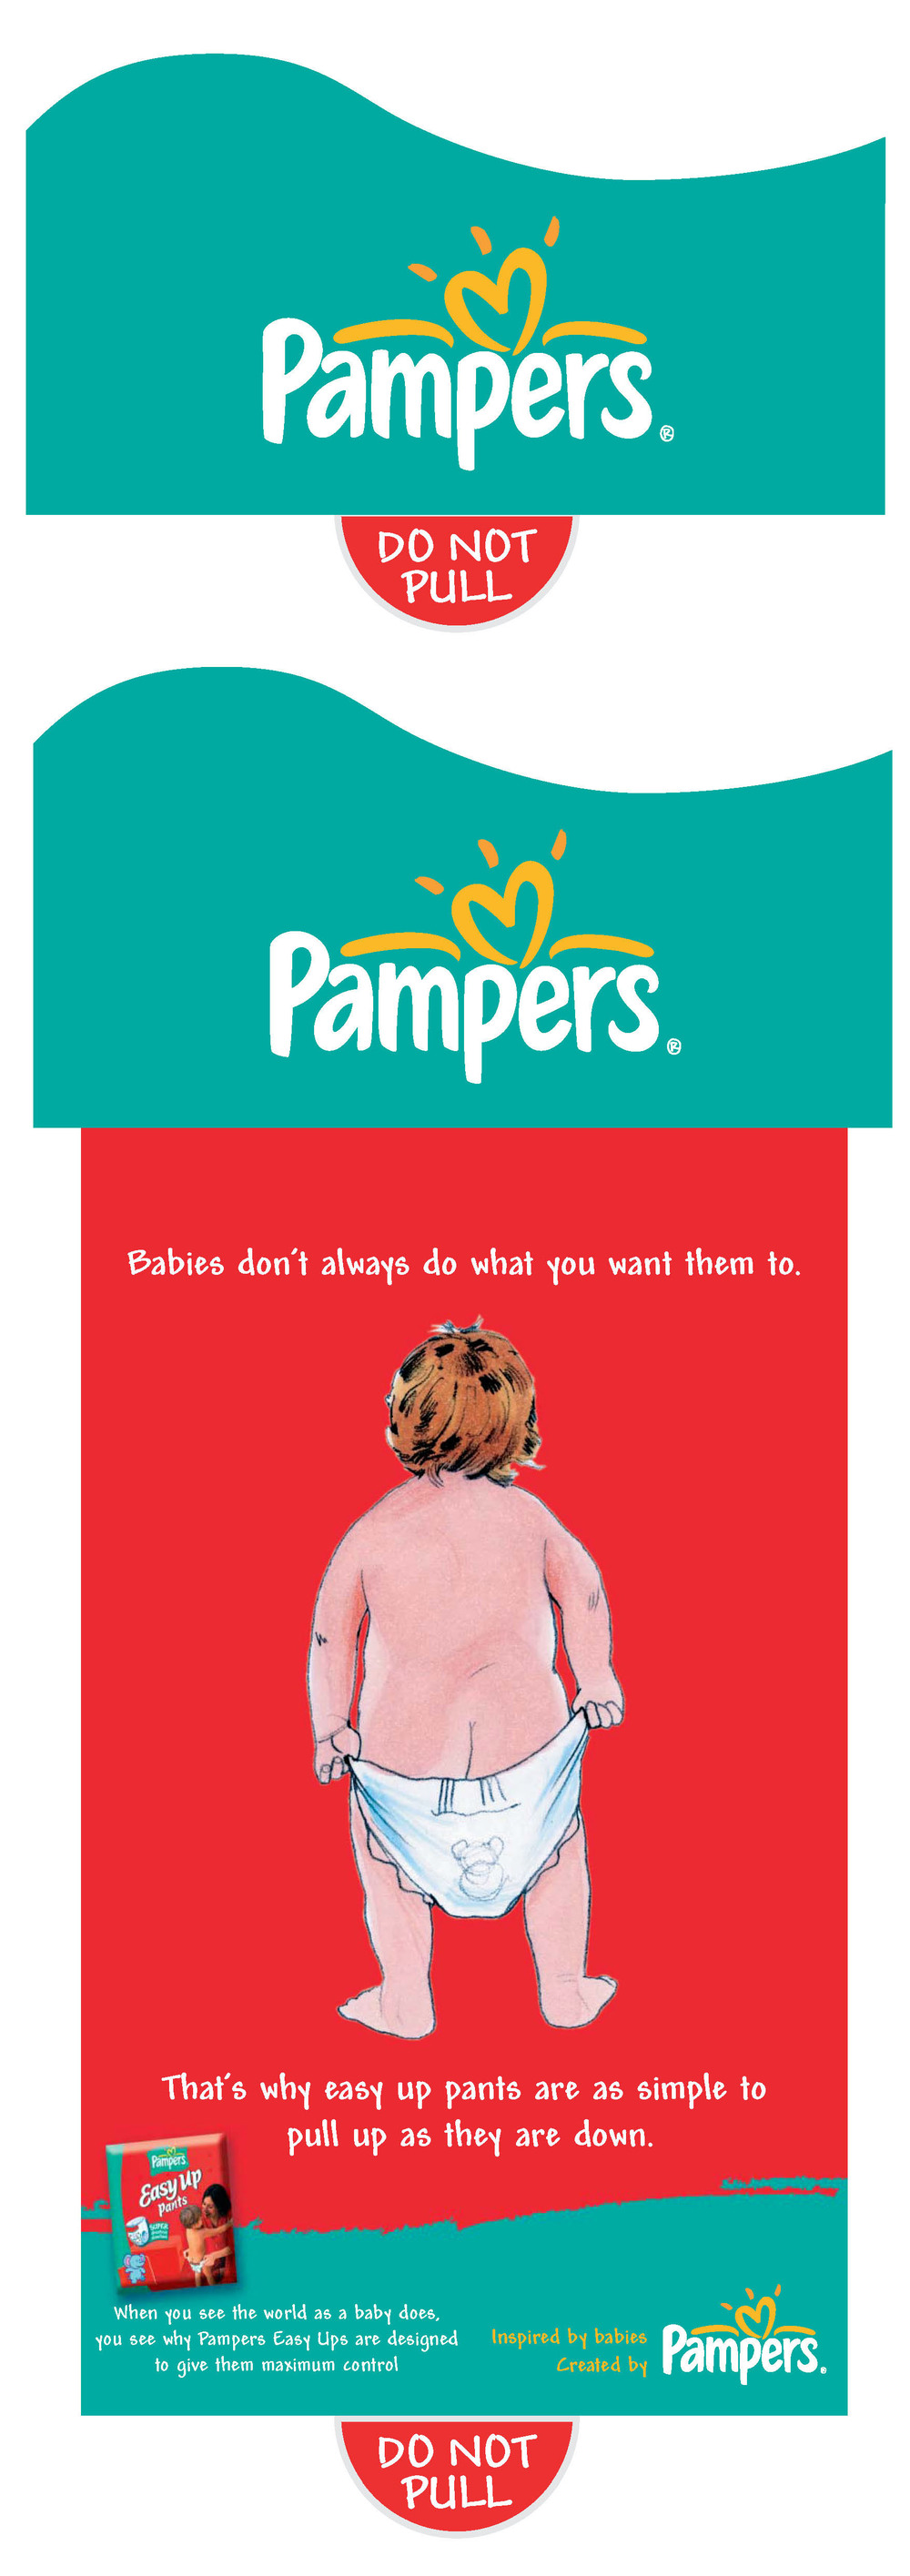 toybox_creative_pampers_experiential_Page_18.jpg